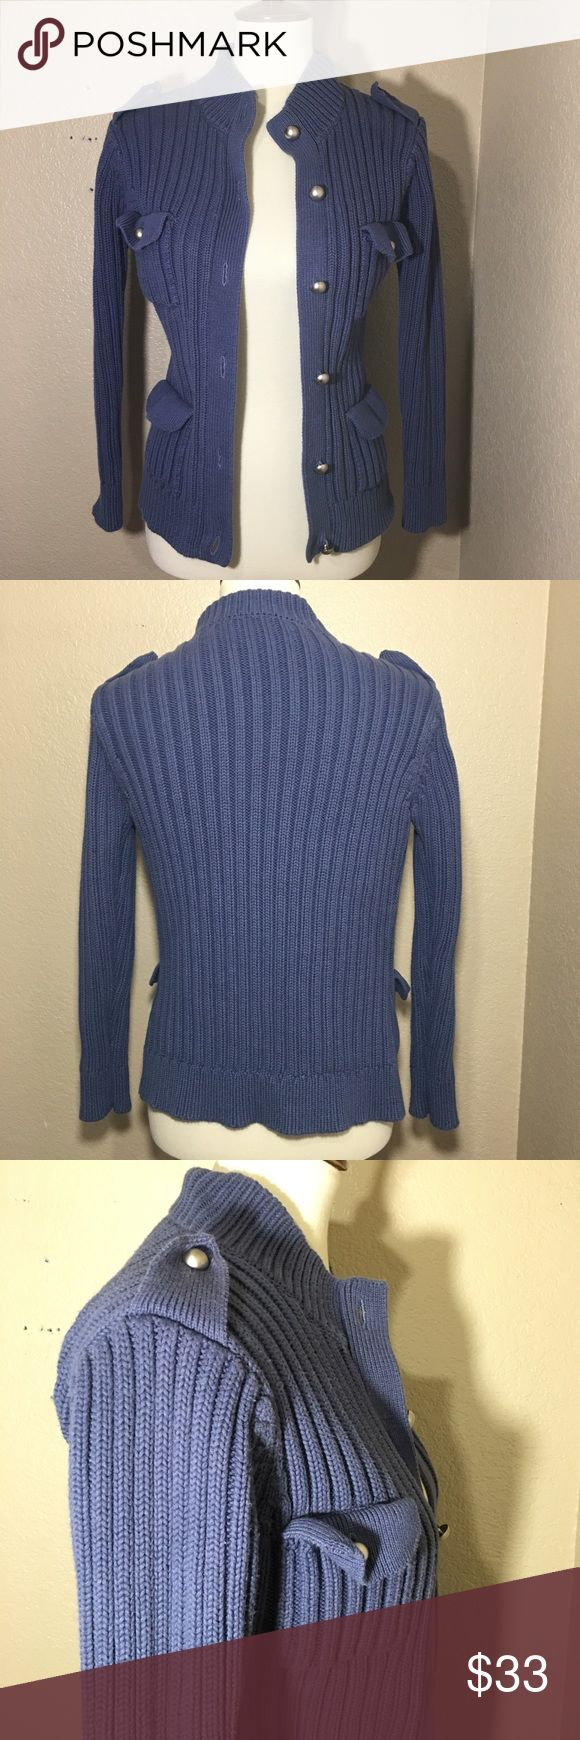 Topshop PETITES Chunky Military Knit Sweater Topshop PETITES Chunky Military Knit Sweater  Blue - Gray Color (the photos make the color look slightly darker than in real life)  Pre - owned, in great condition, no stains, rips etc.  Size Petite (Small) Topshop PETITE Sweaters Cardigans